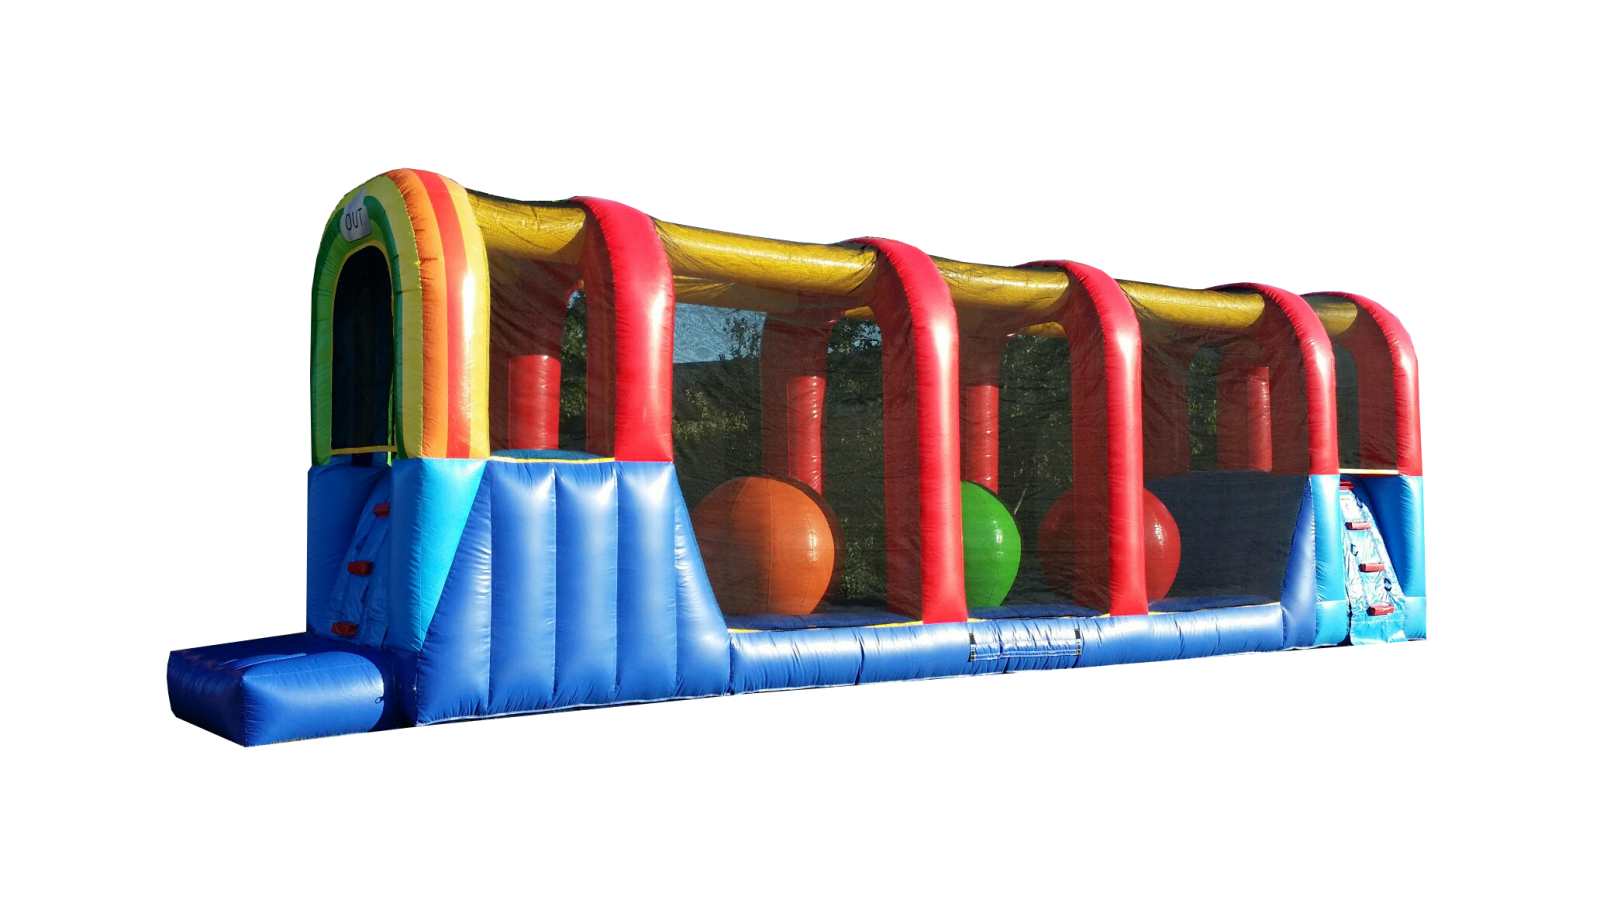 wipeout Obstacle Course rentals Nashville TN